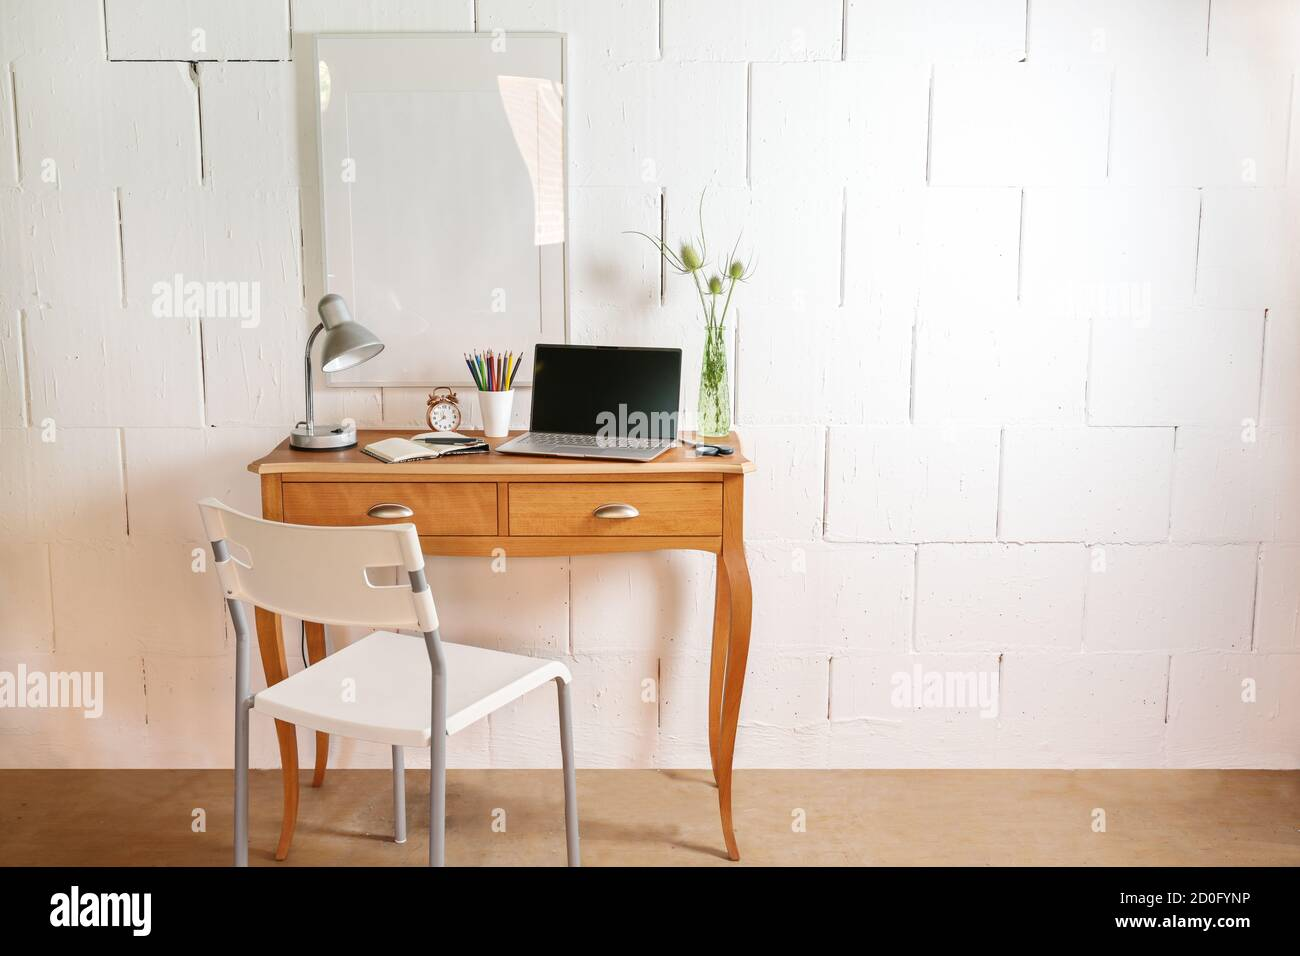 Small Wooden Table And Chair As A Tiny Place For A Home Office With Laptop Desk Lamp And Tools Against A Rough White Wall Copy Space Selected Focus Stock Photo Alamy